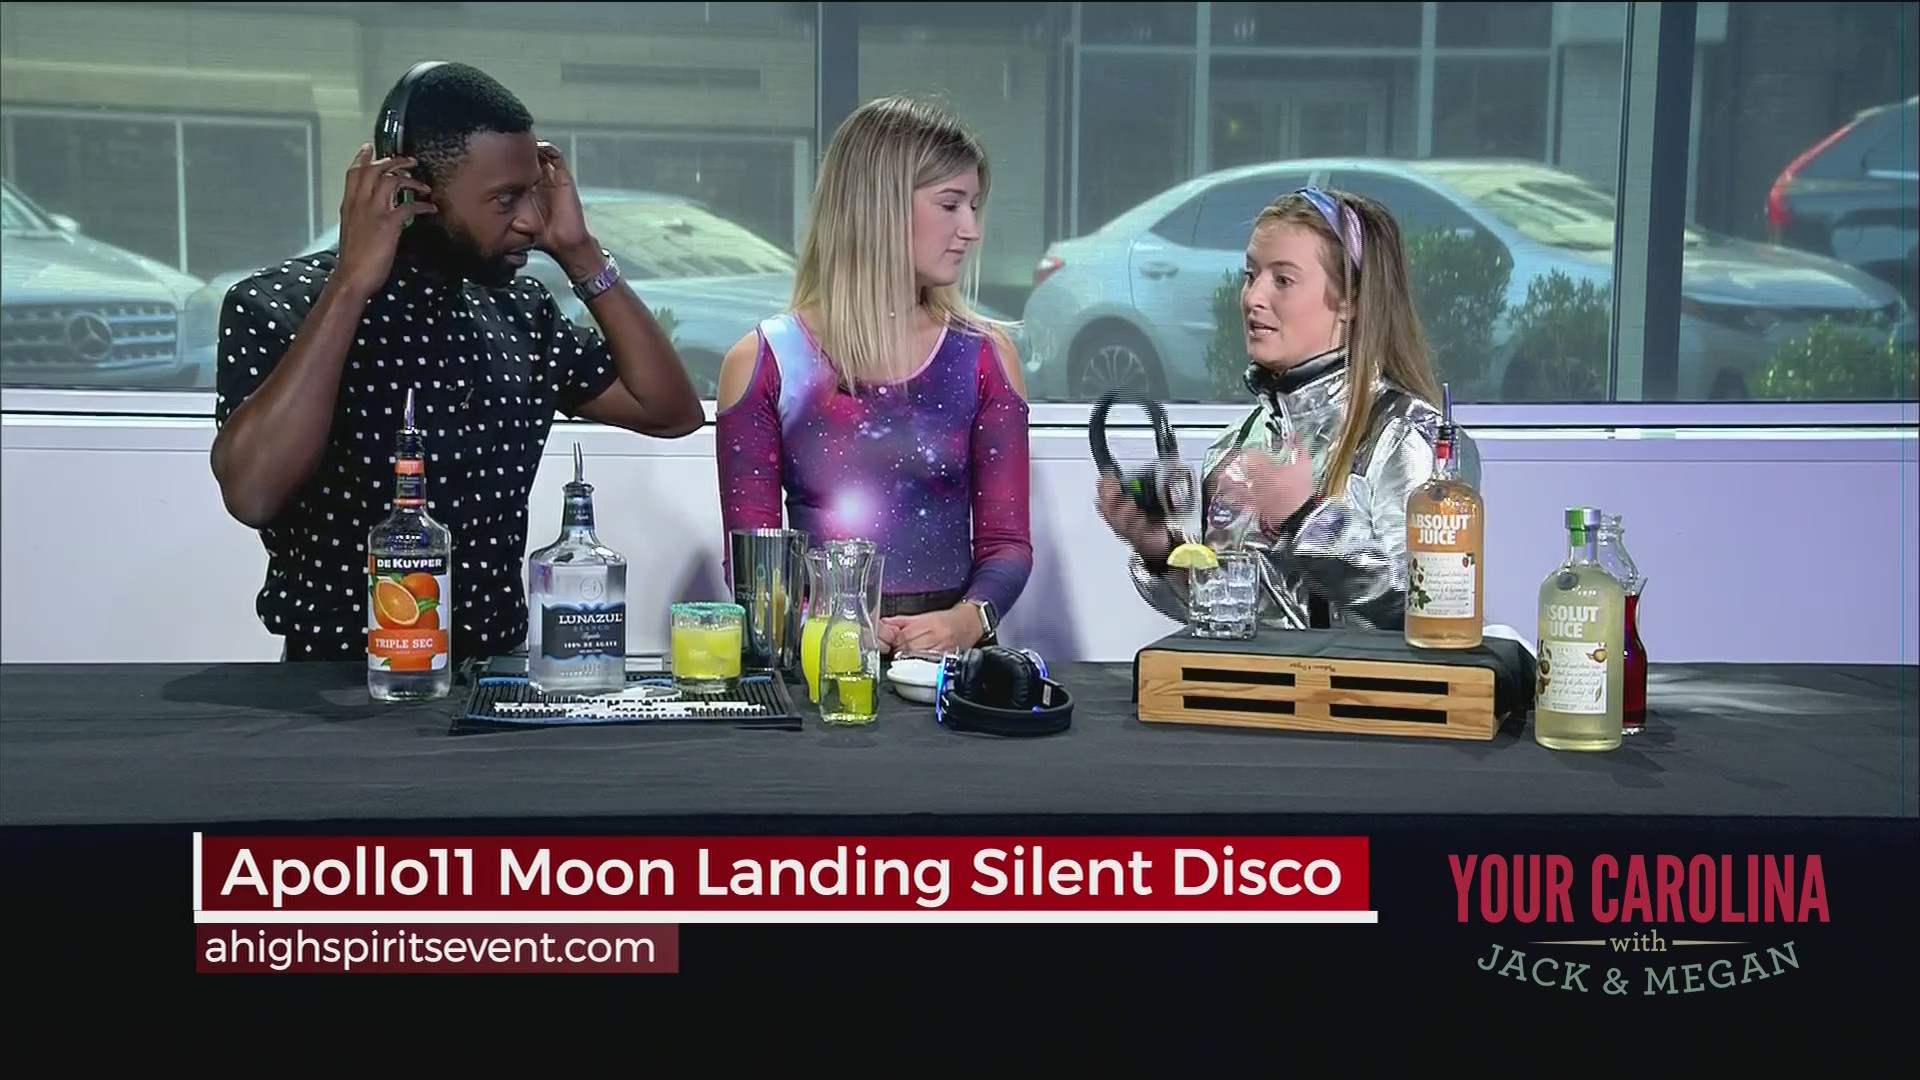 Apollo11 Moon Landing Silent Disco